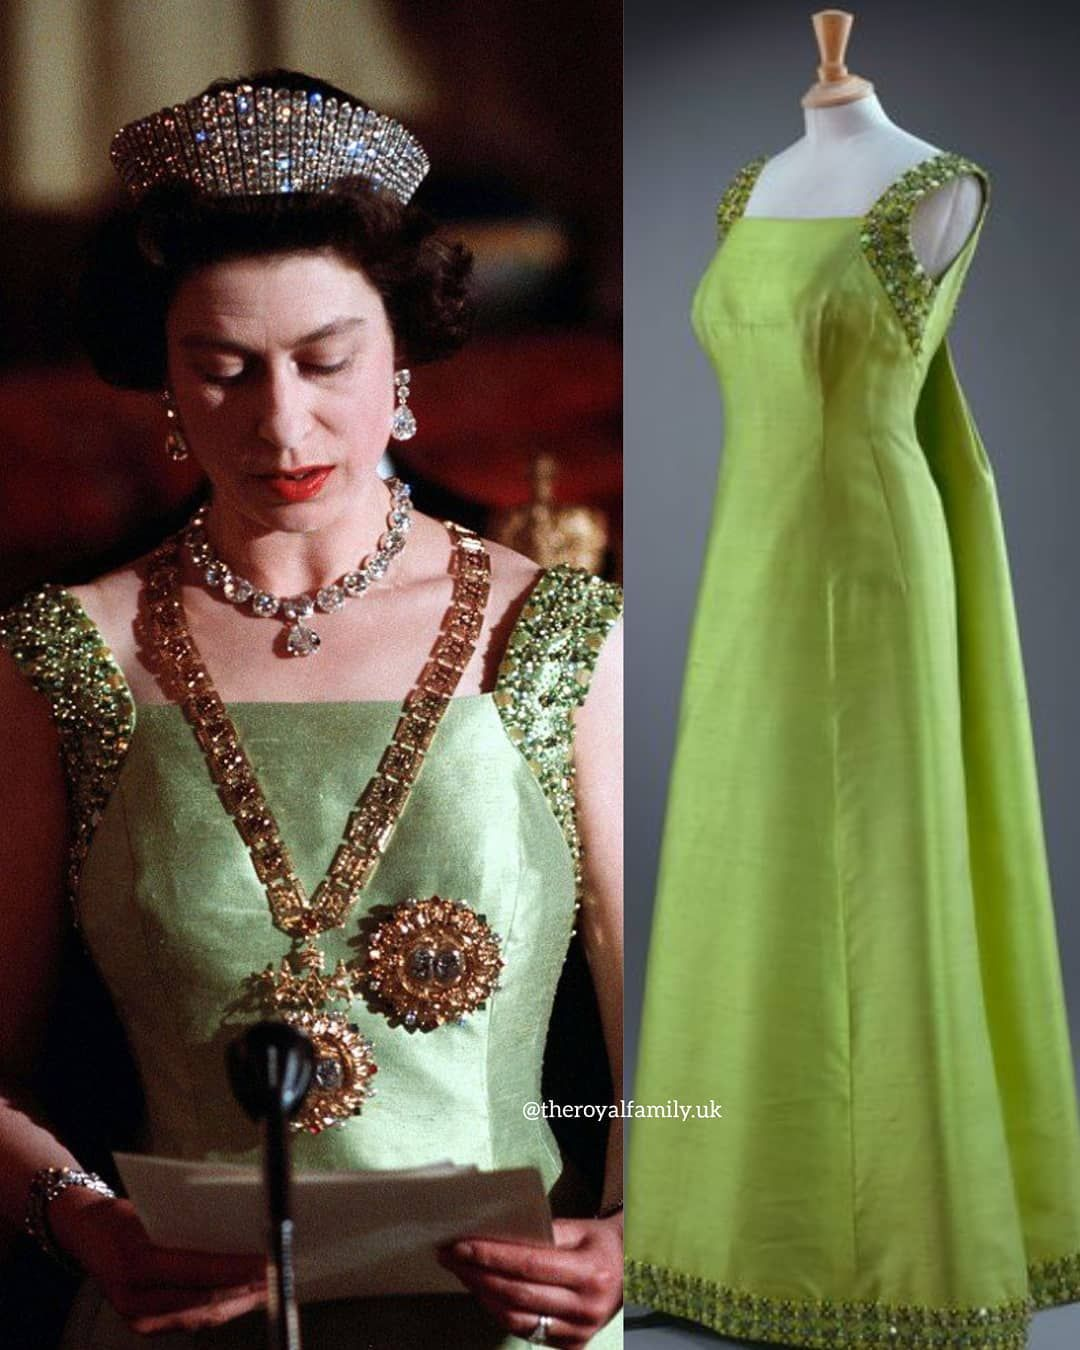 Theroyalfamily Uk On Instagram Queen Elizabeth S Wardrobe This Jewelled Embroidered Green Silk Dress Dress Was Designed By Norman Hartnell This Fabulous [ 1350 x 1080 Pixel ]